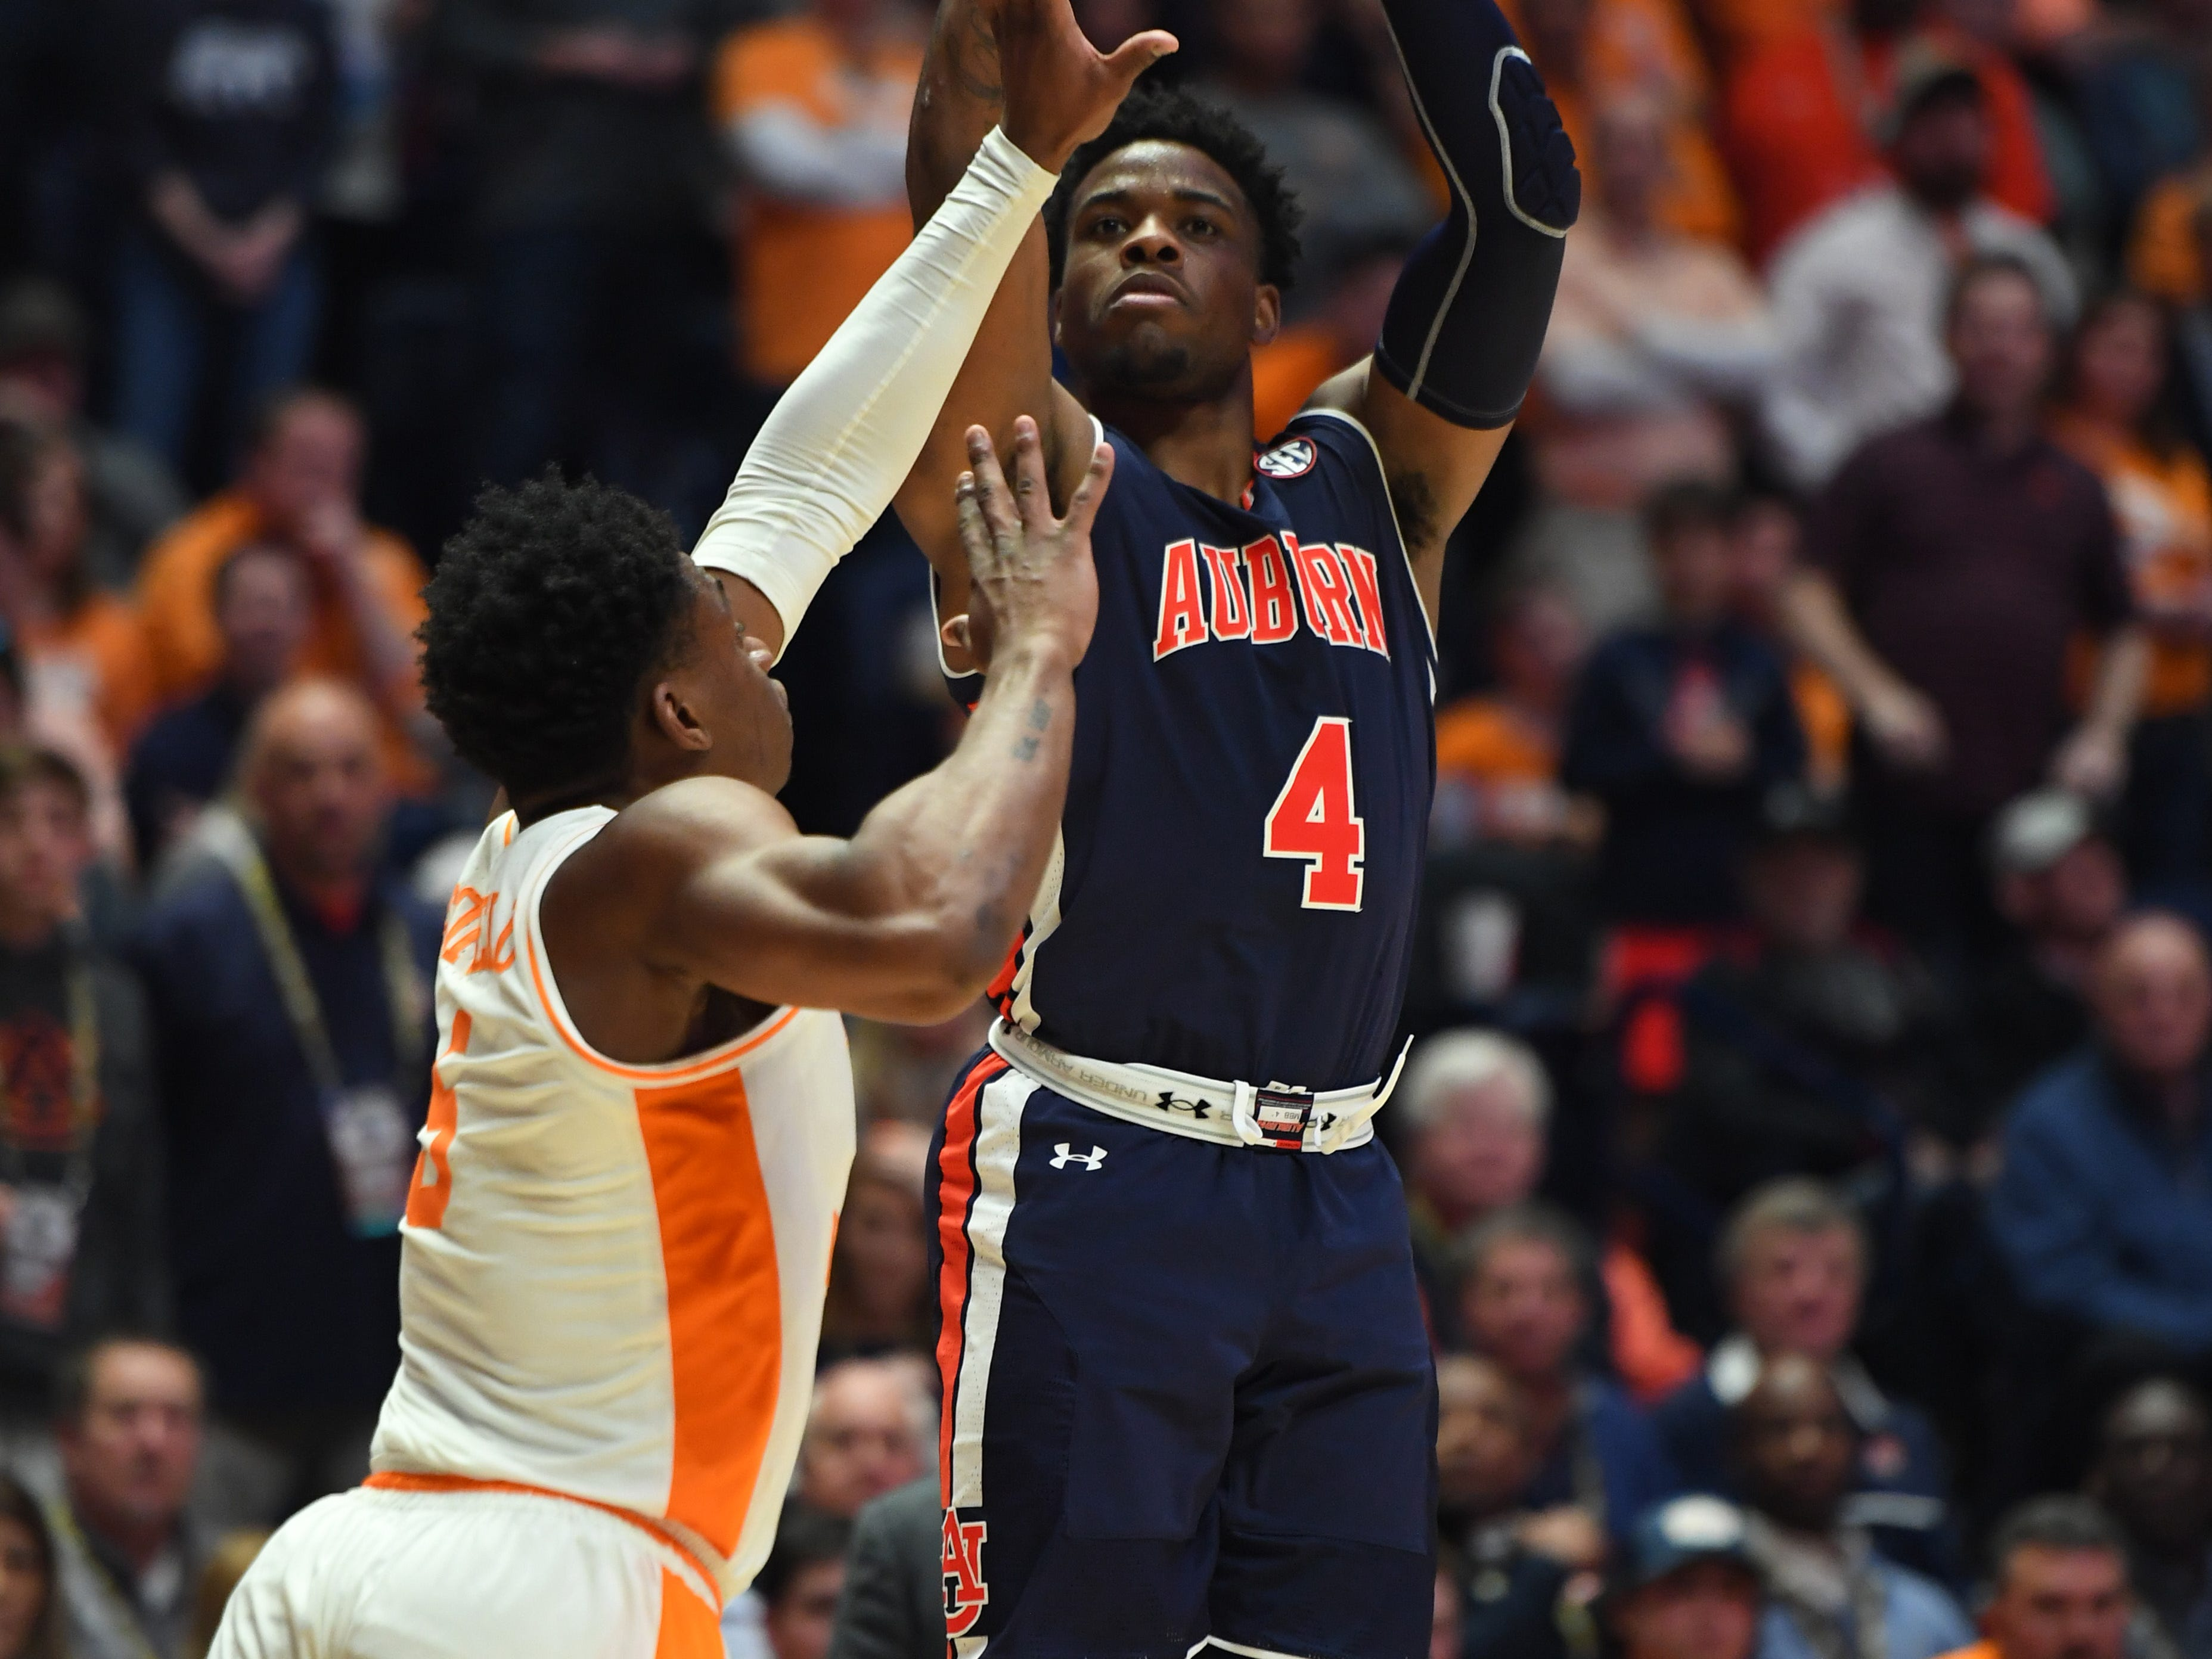 Mar 17, 2019; Nashville, TN, USA; Auburn Tigers guard Malik Dunbar (4) shoots the ball over Tennessee Volunteers guard Admiral Schofield (5) during the second half in the SEC conference tournament championship game at Bridgestone Arena. Mandatory Credit: Christopher Hanewinckel-USA TODAY Sports